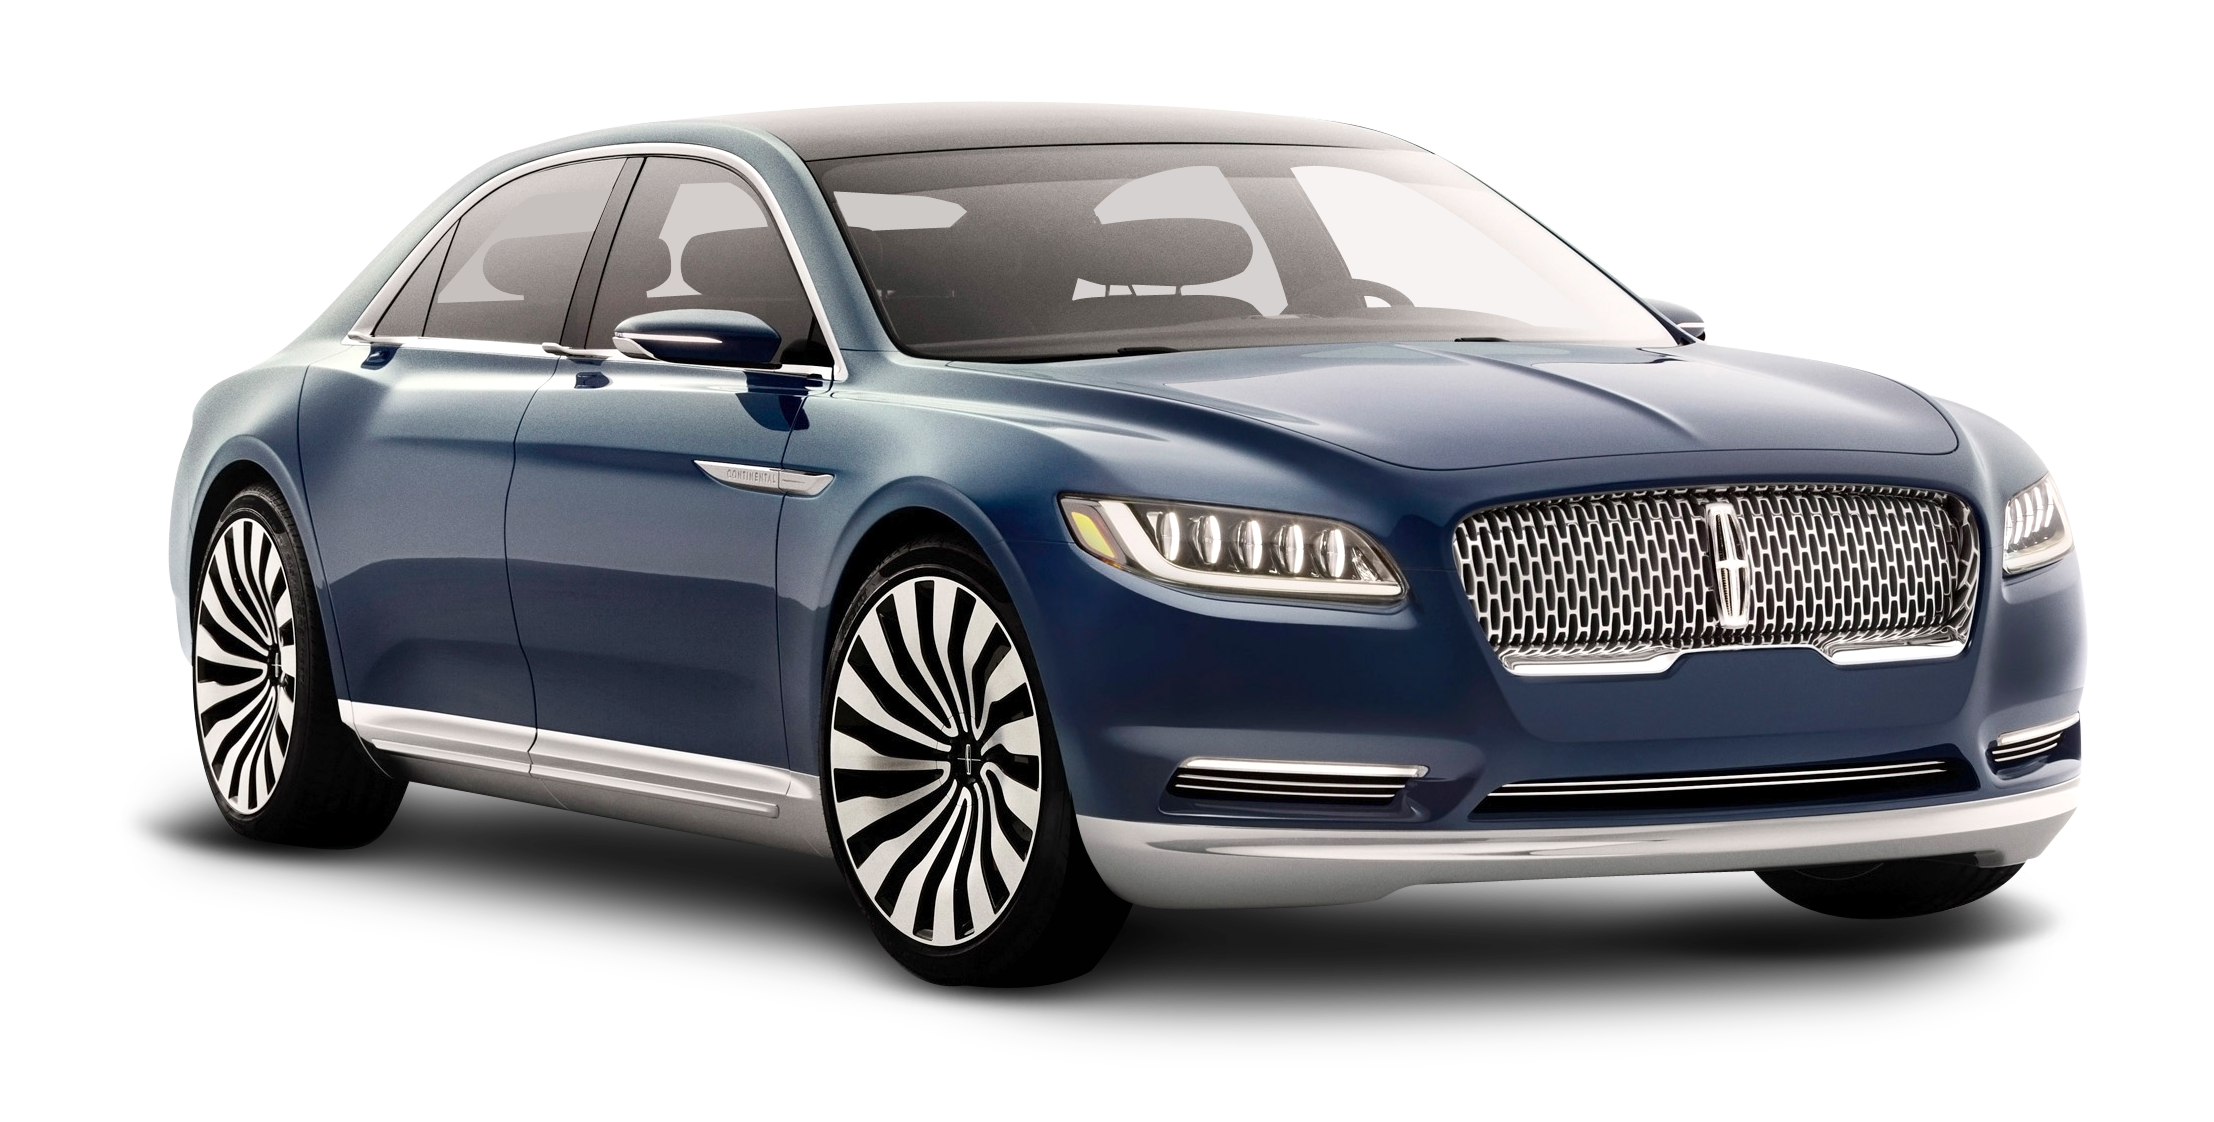 2016 Lincoln MKX 2017 Lincoln Continental Car Luxury vehicle.